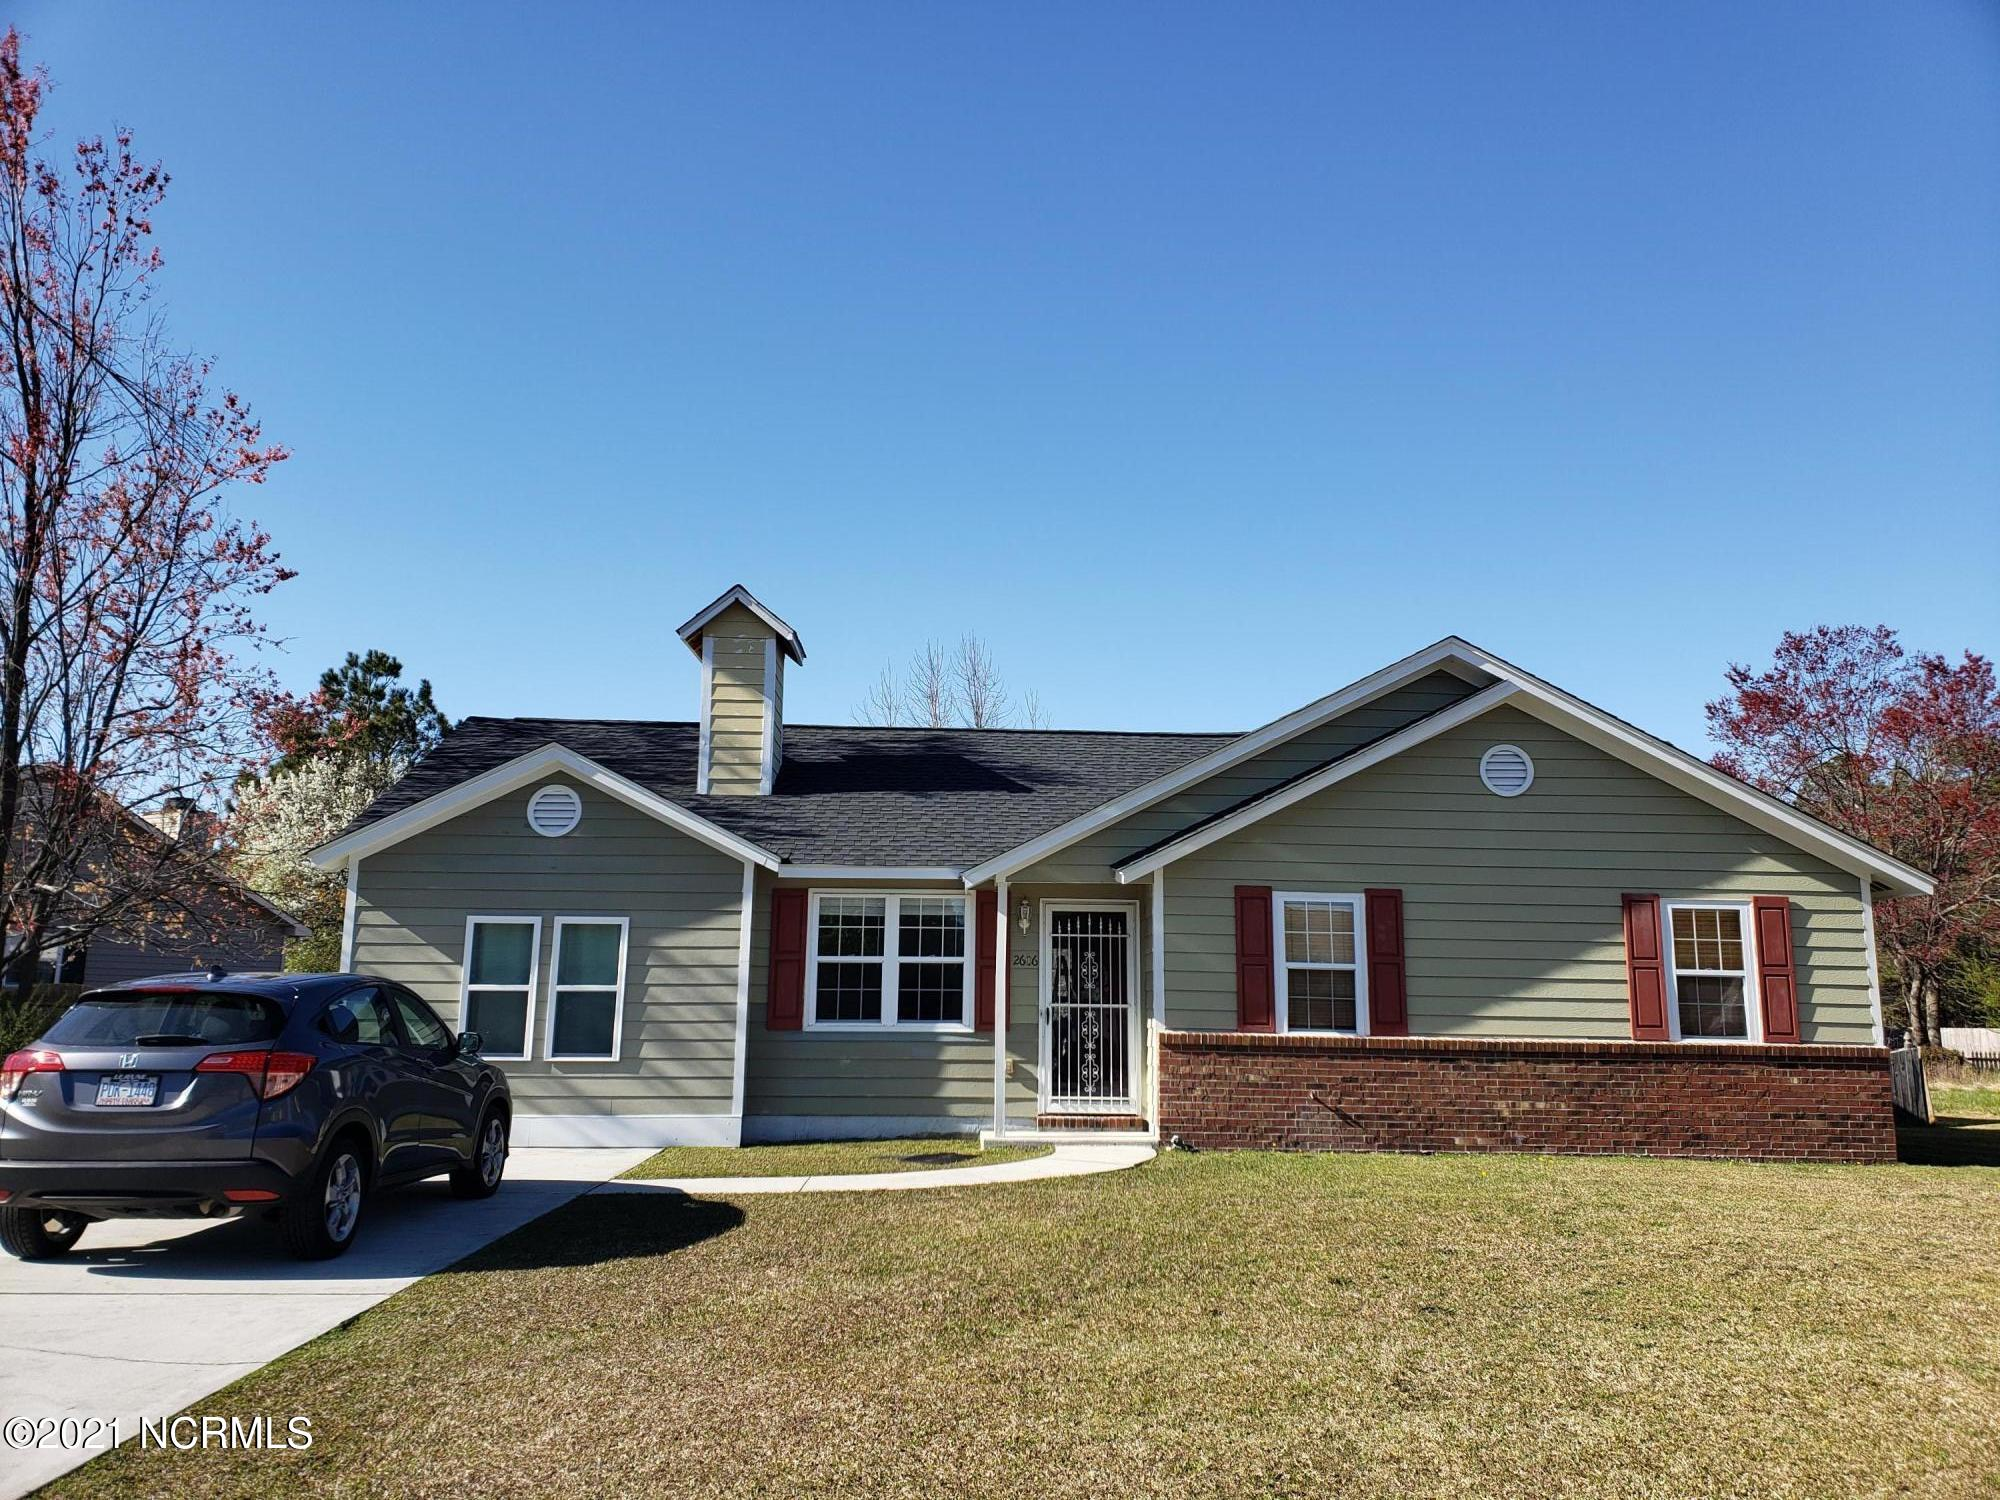 This adorable home has it all! New roof in 2019. 3 bedroom, 2 bath with extra large bonus room. Conveniently close to restaurant, shopping & base. Must see!!